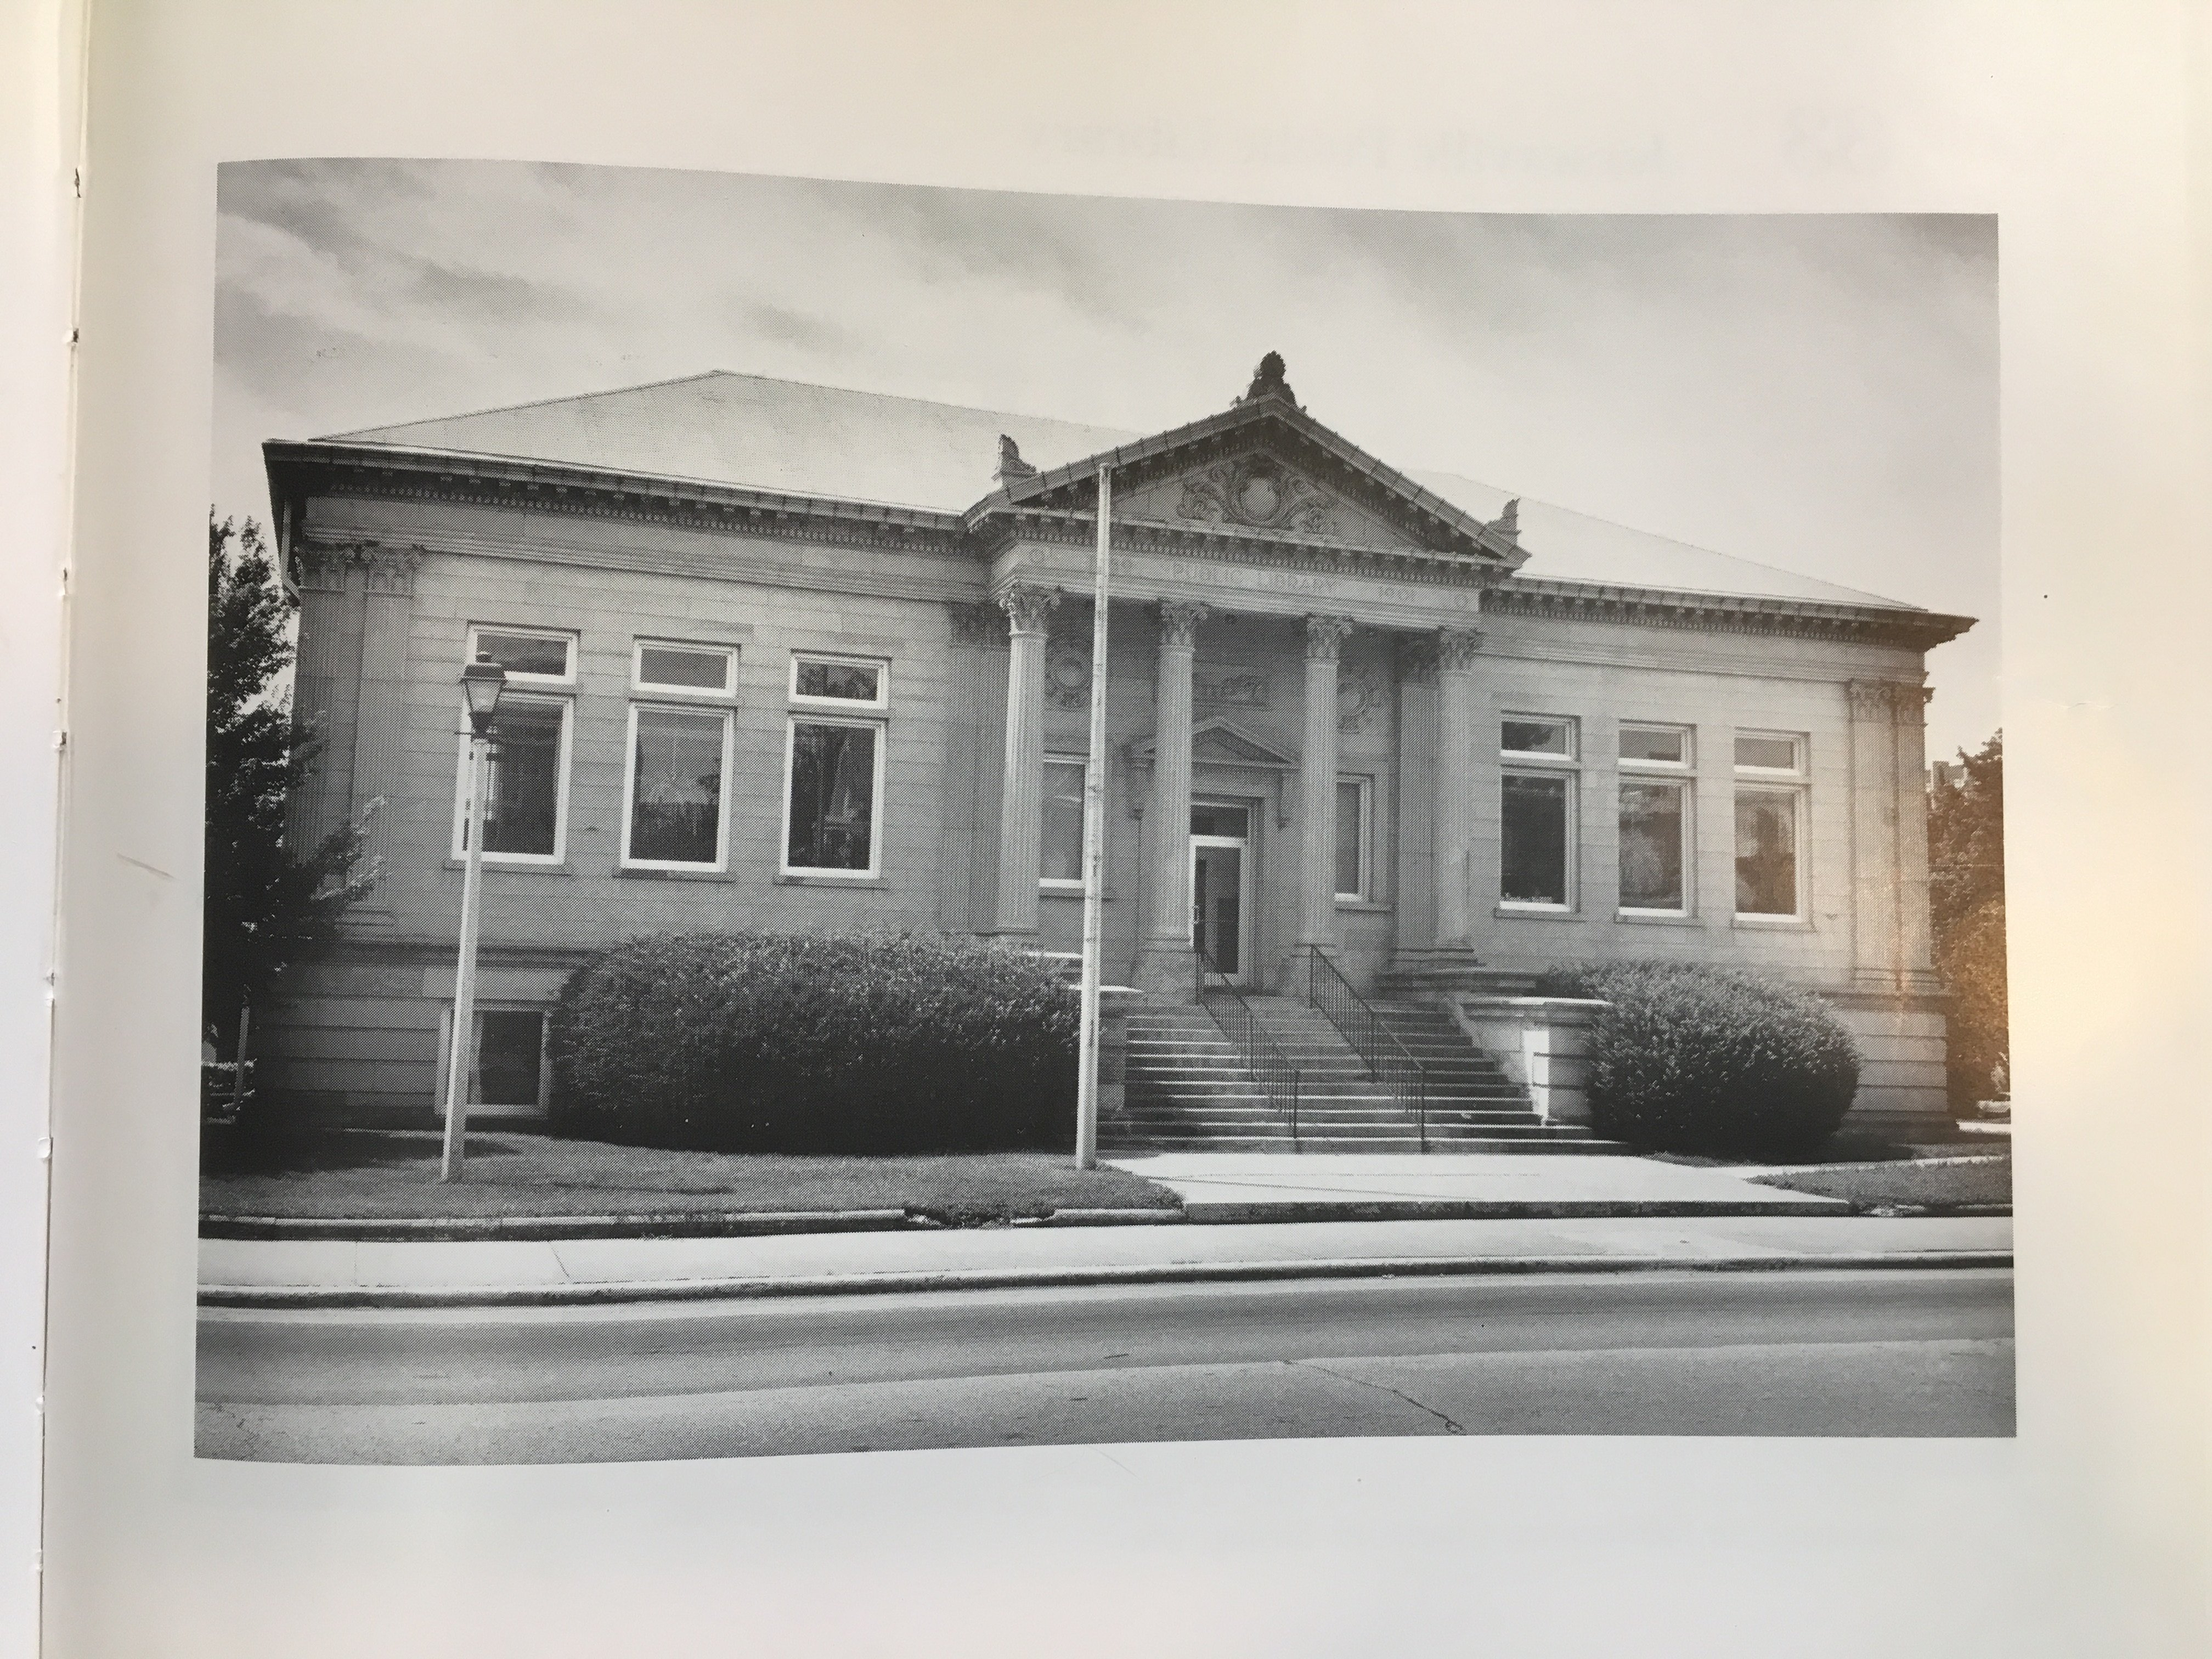 This photograph of the Public Library comes from the book written by Raymond and Linda Bial and was photographed by Raymond Bial.